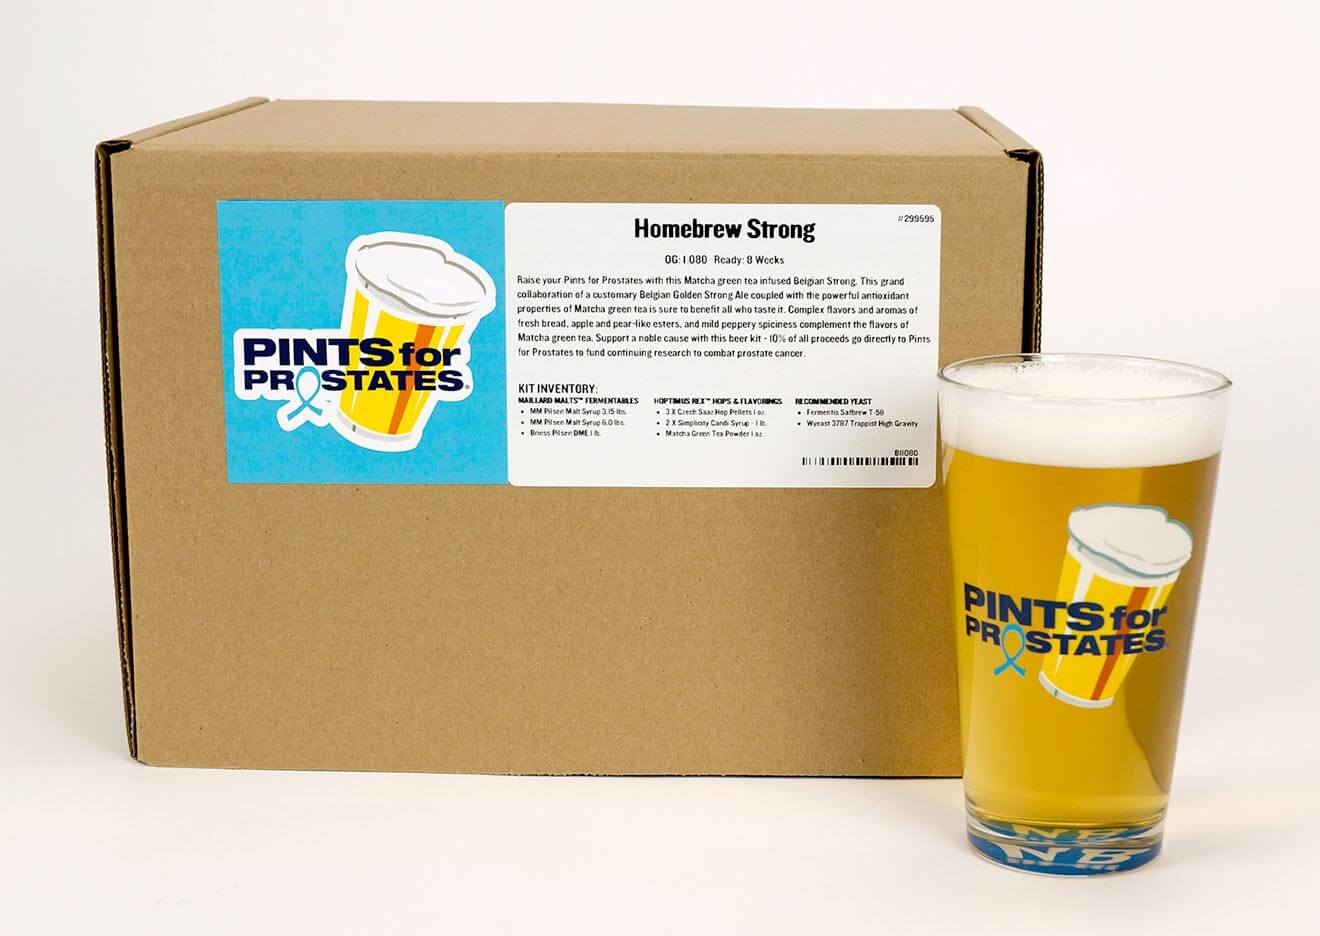 Northern Brewer Partners with Pints for Prostates, beer news